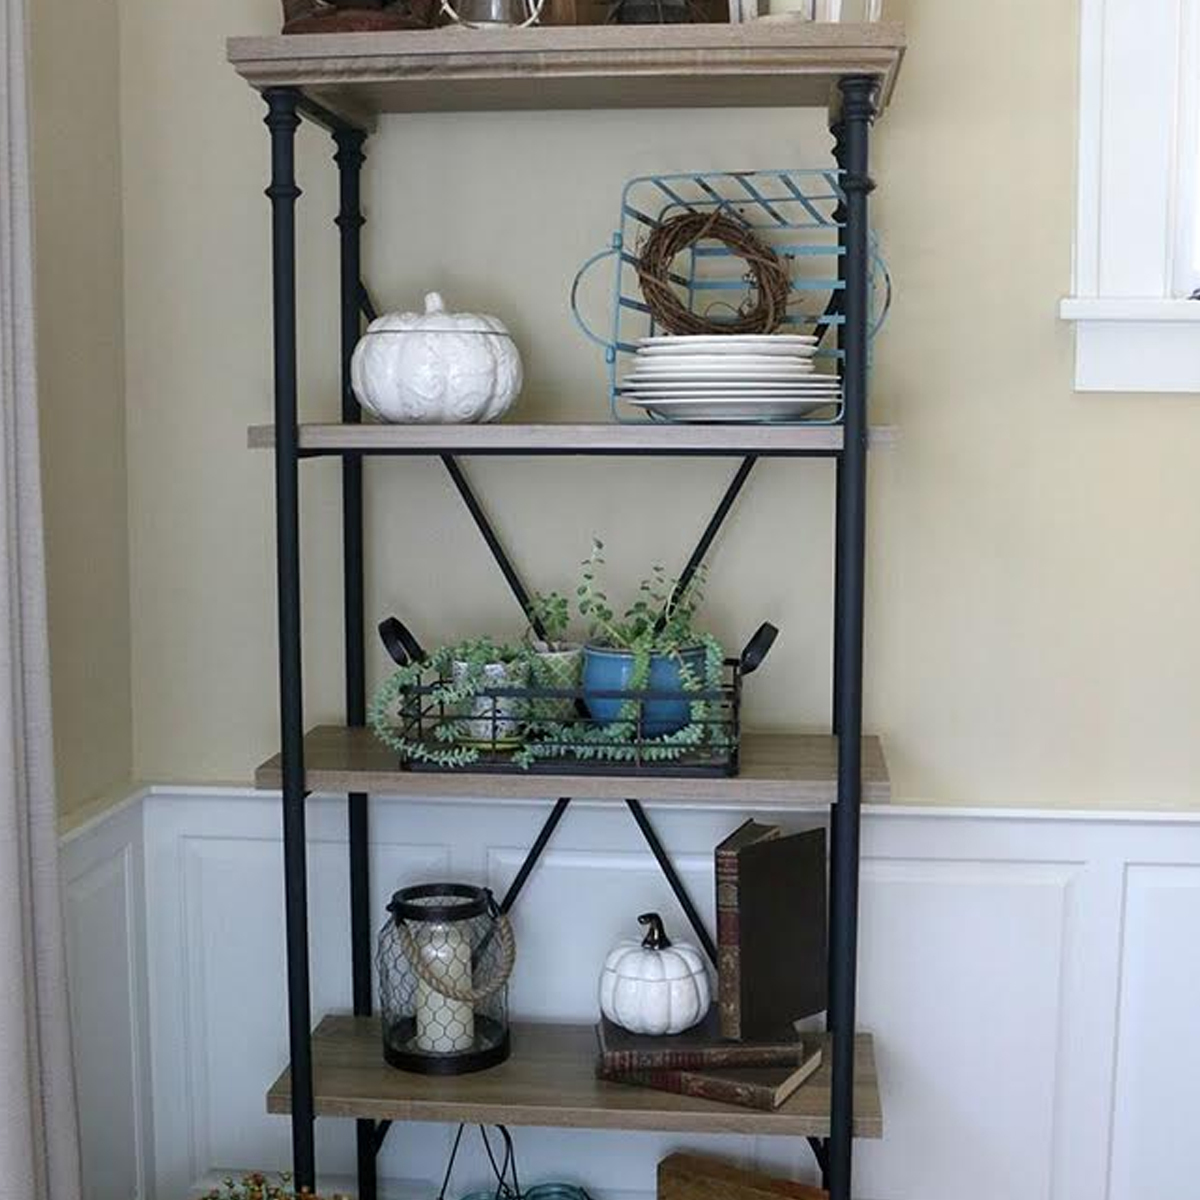 5-shelf bookcase with simple decor items dsiplayed on it photo